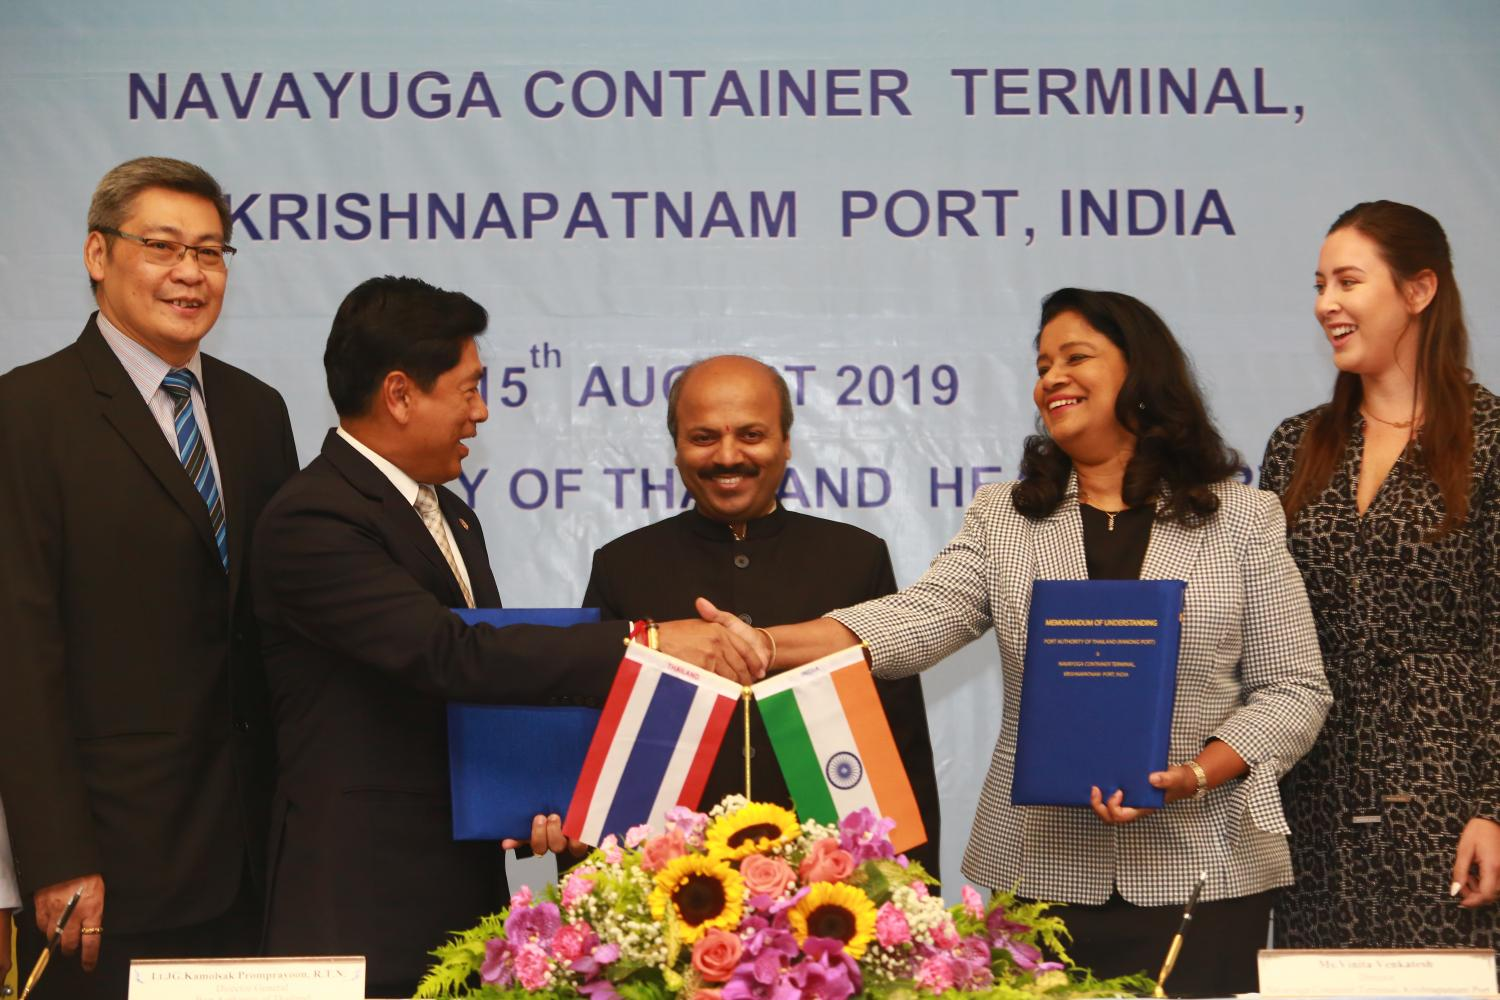 Port Authority of Thailand director-general Kamolsak Promprayoon shakes hands with Vinita Venkatesh, director of Krishnapatnam Port, at the signing of a memorandum of understanding to promote cooperation between Ranong Port and Krishnapatnam Port of India. (Photo by Somchai Poomlard)